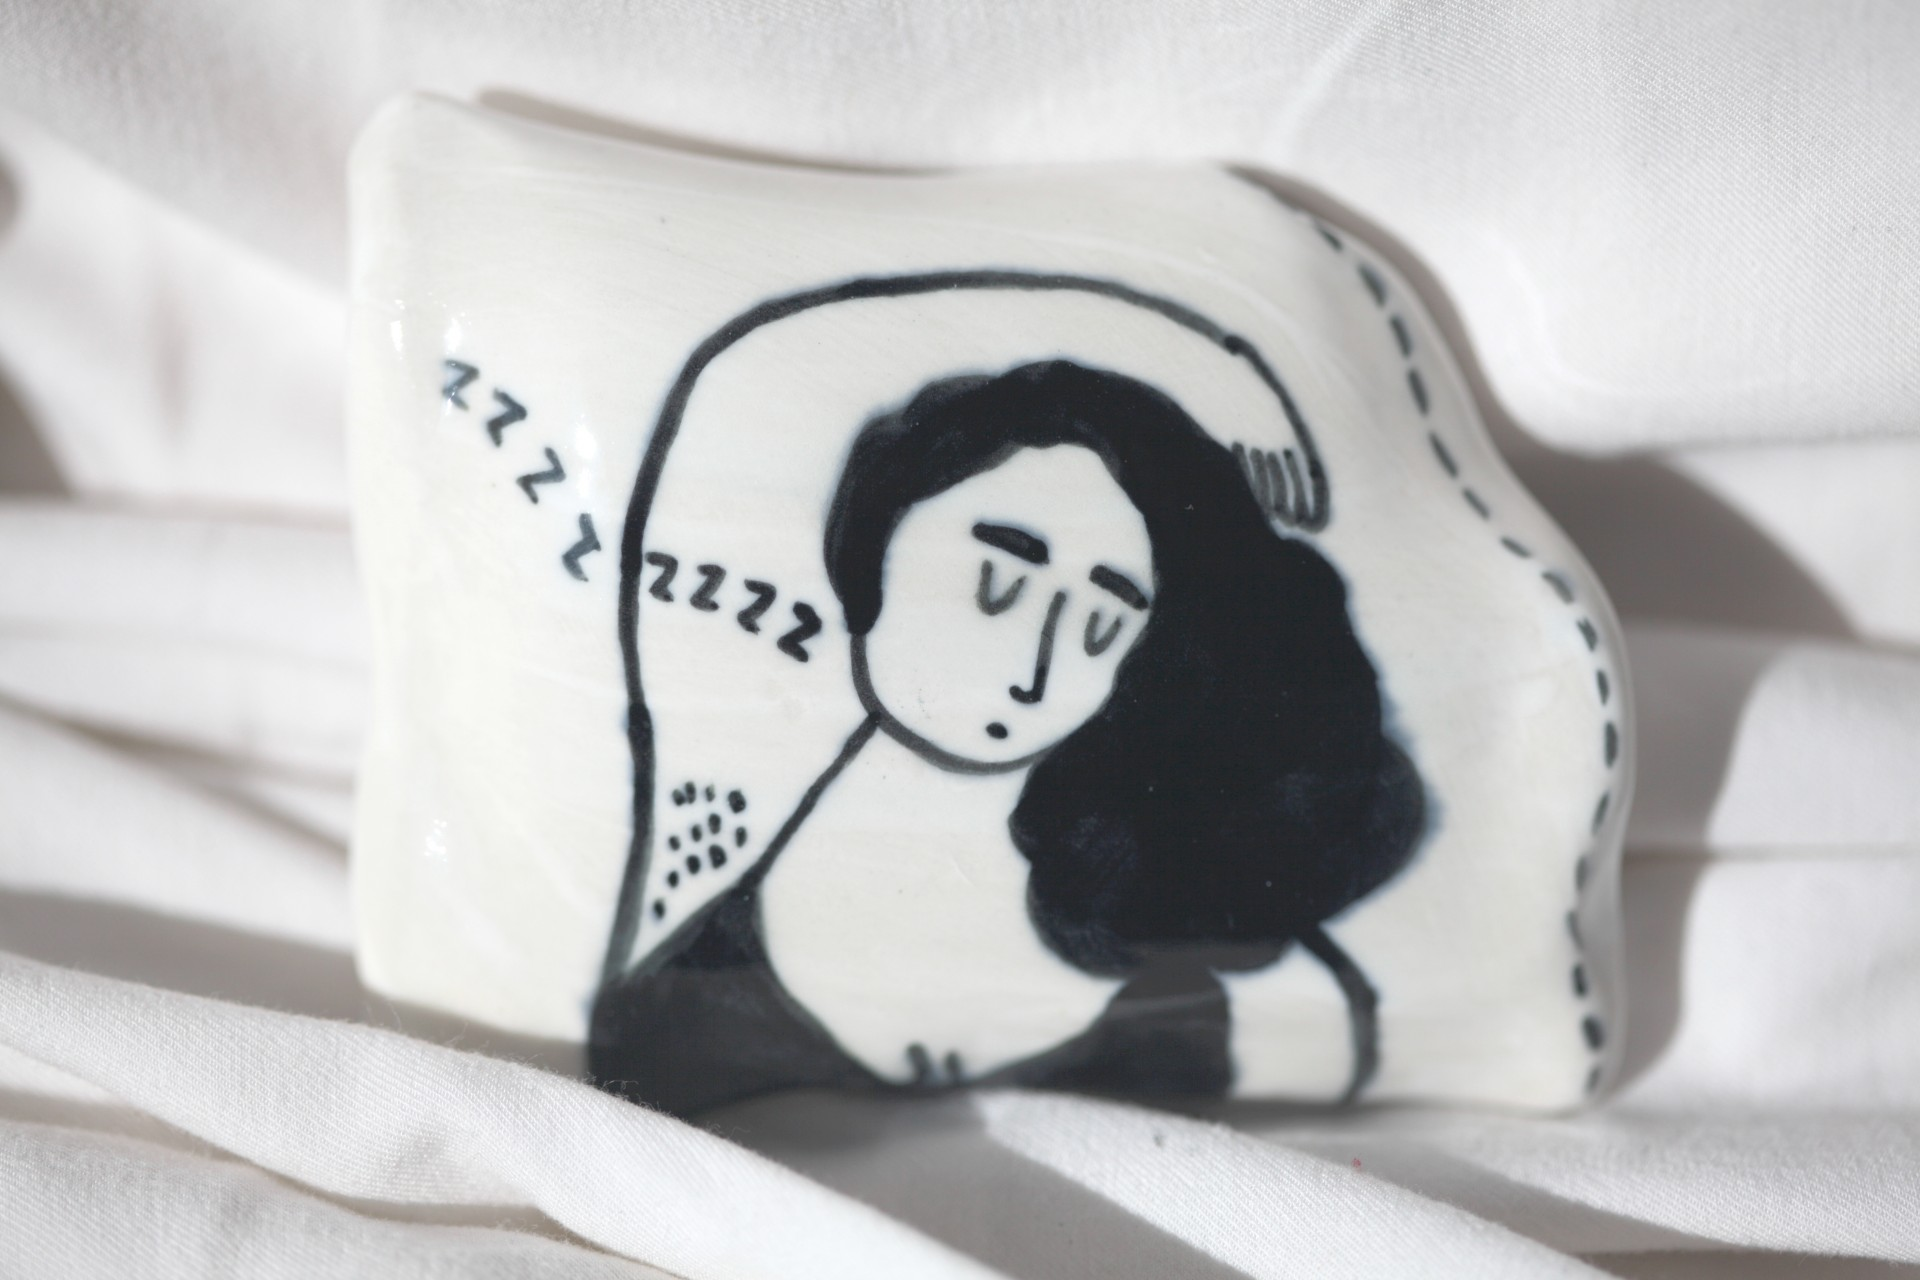 One porcelain pillow painted with a girl sleeping on it photographed against white sheets.